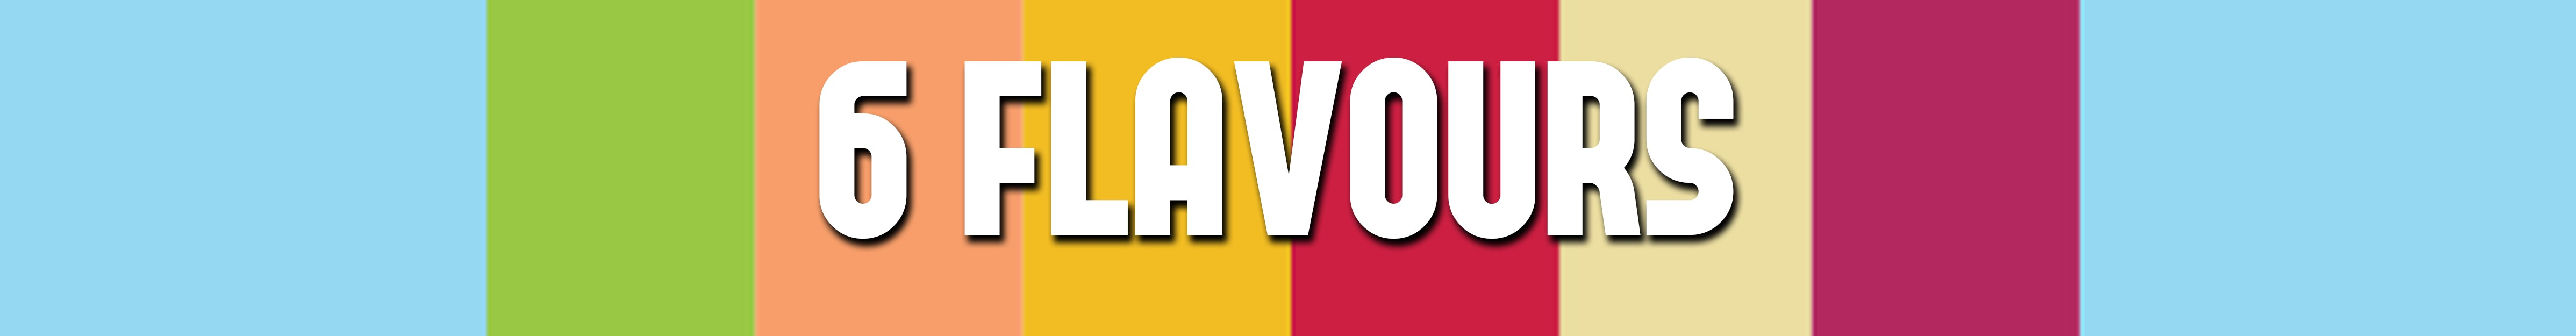 cola vape zap juice eliquid ejuice 6 flavours